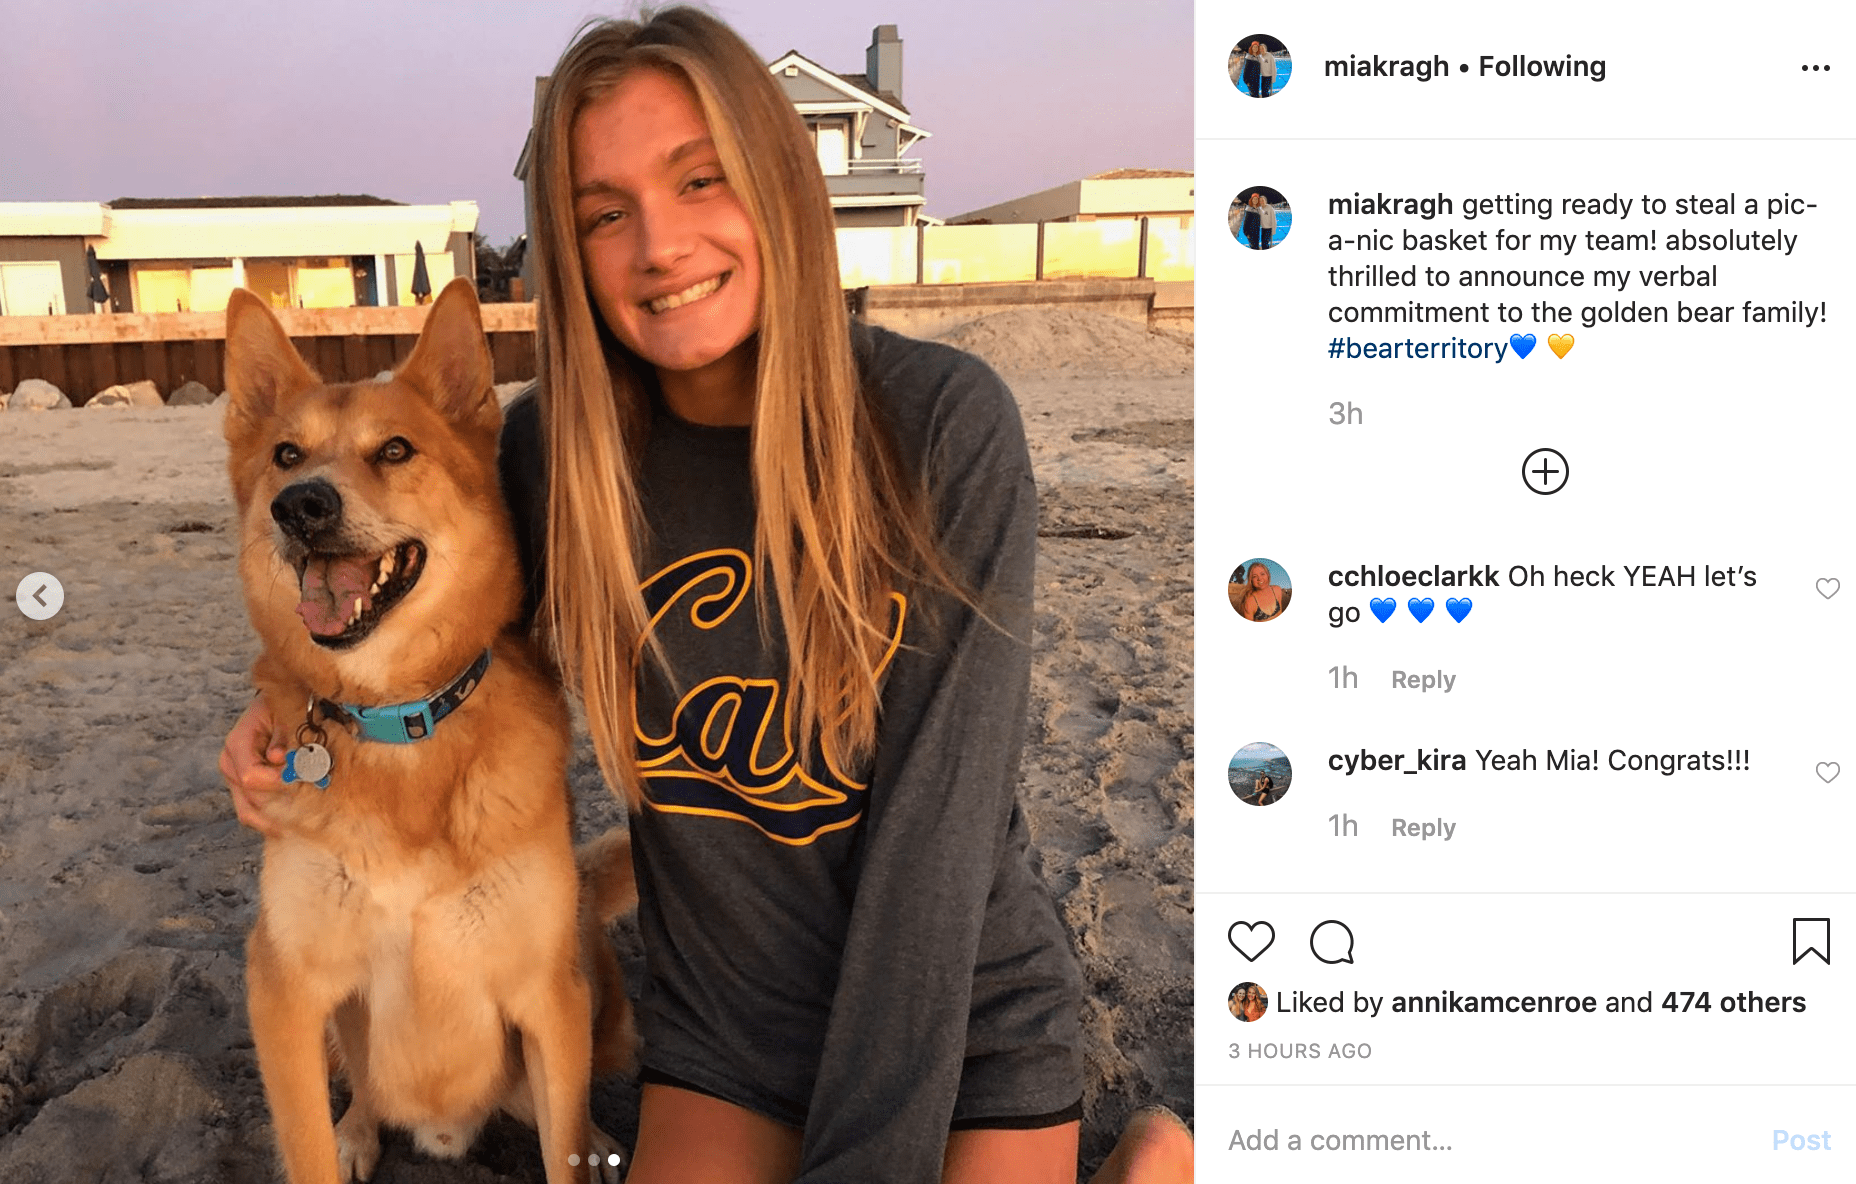 Mia Kragh Instagram  cal commitment